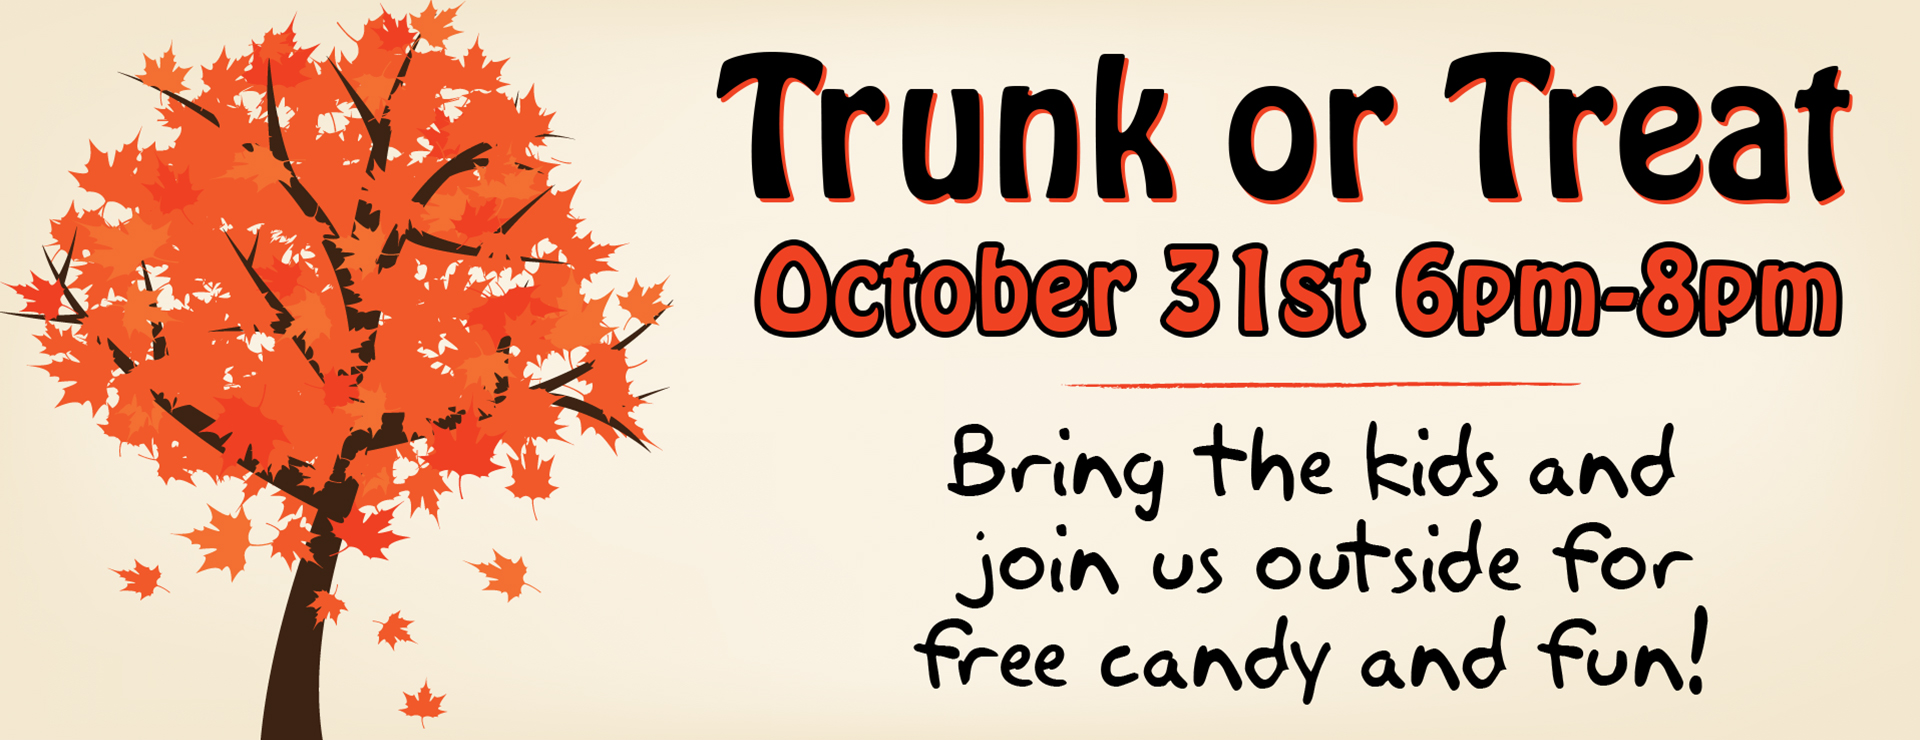 Trunk or Treat Tuesday October 31st